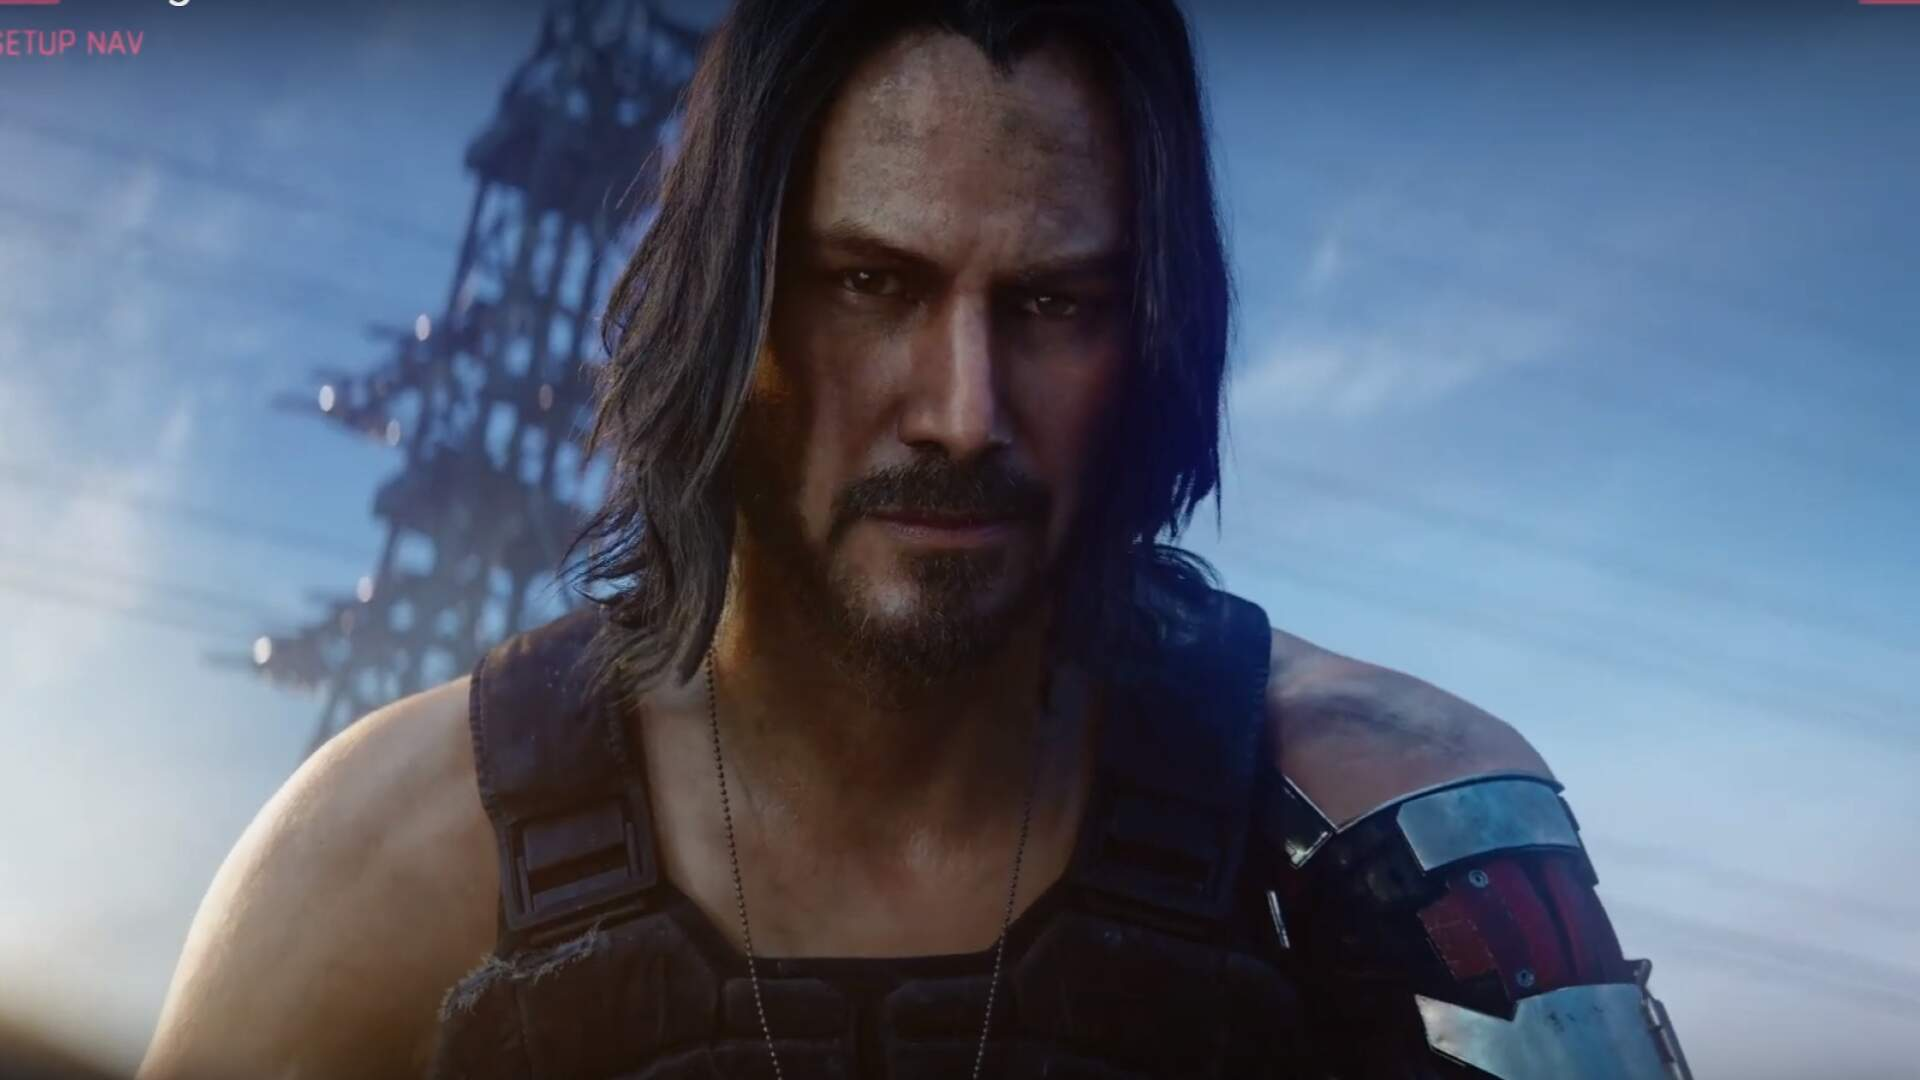 Cyberpunk 2077 Likely Won't Come to PS5 or Scarlett Around Launch